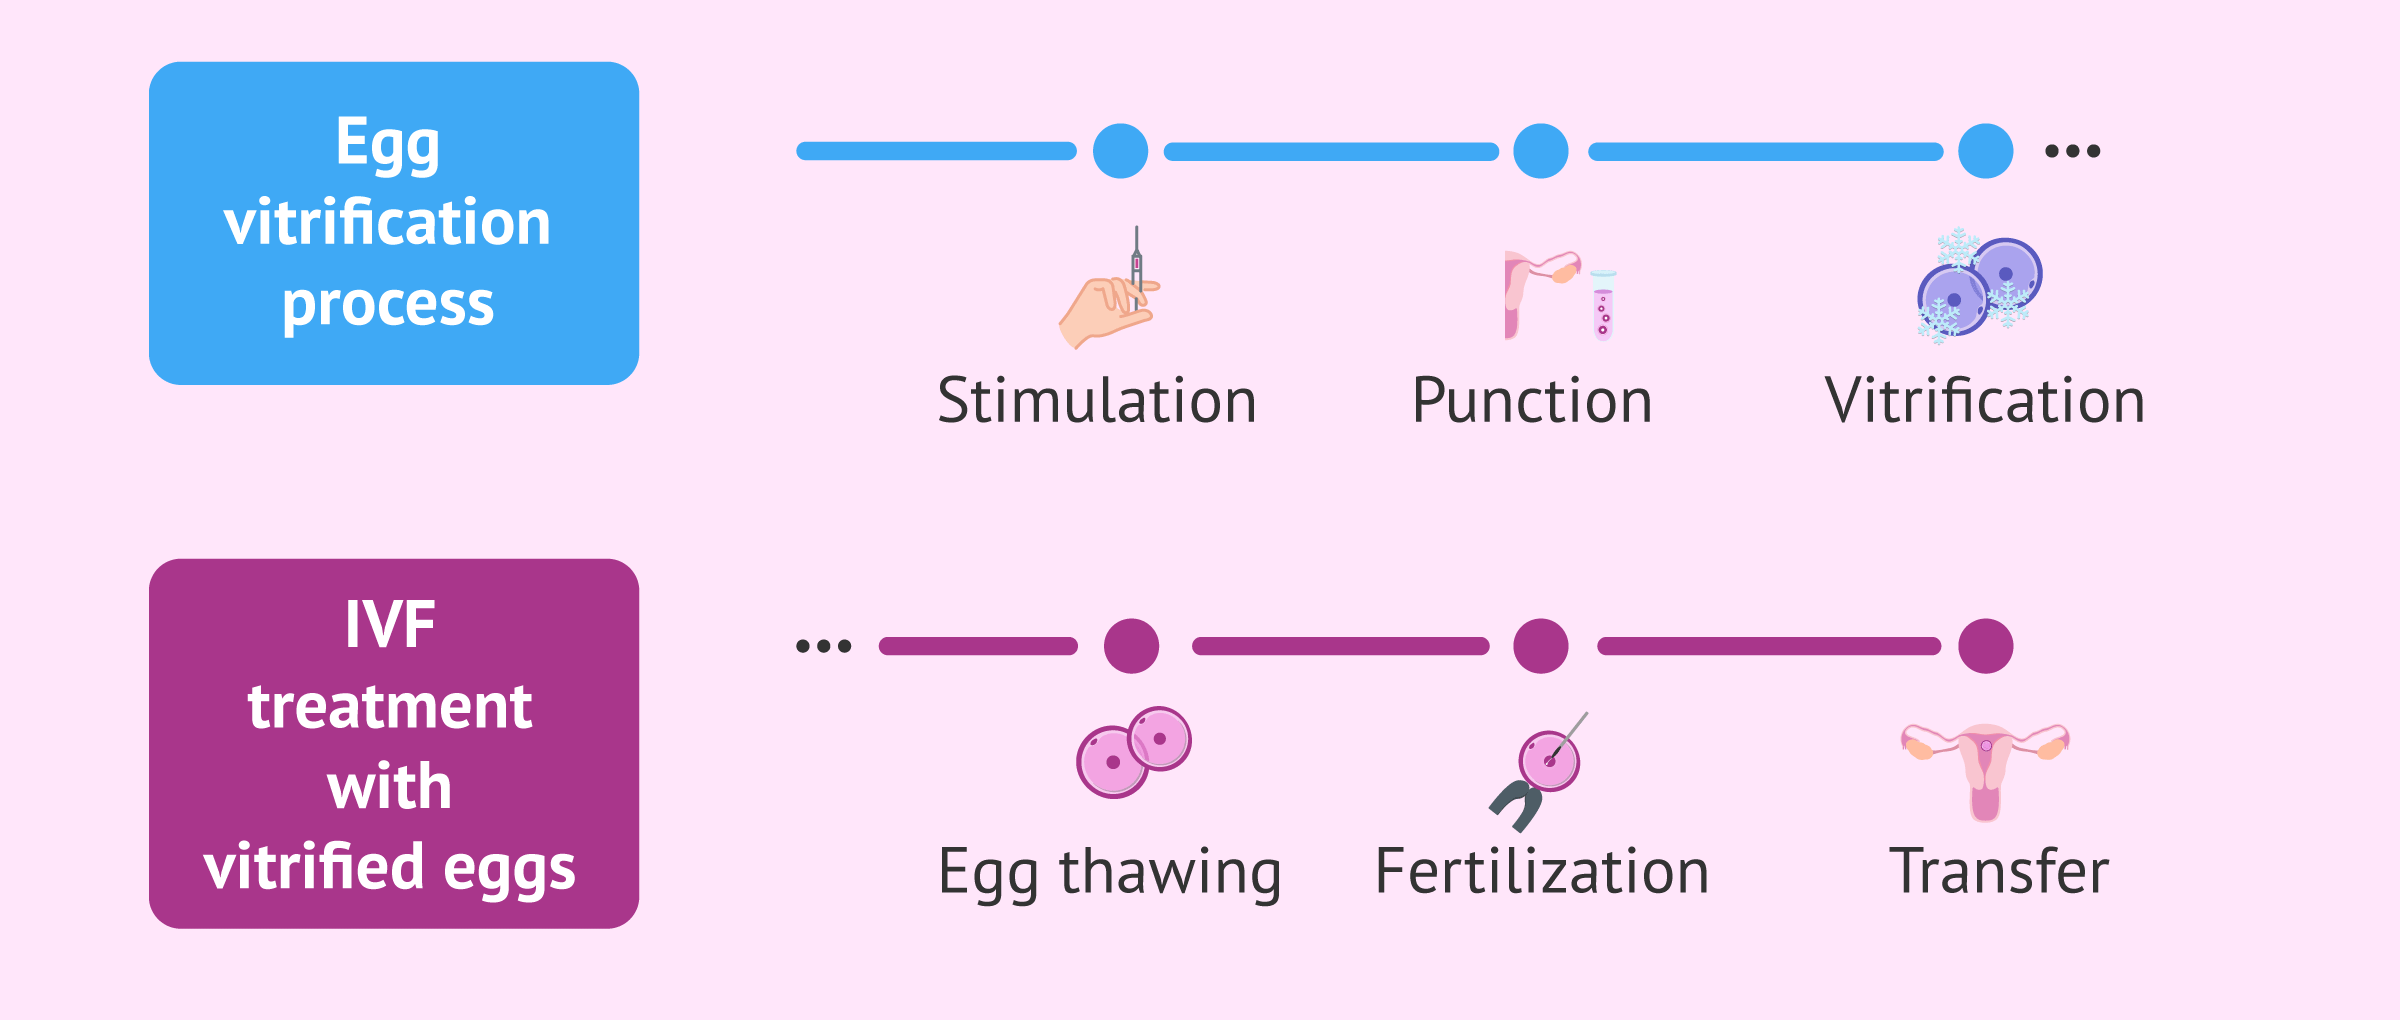 IVF process with frozen eggs